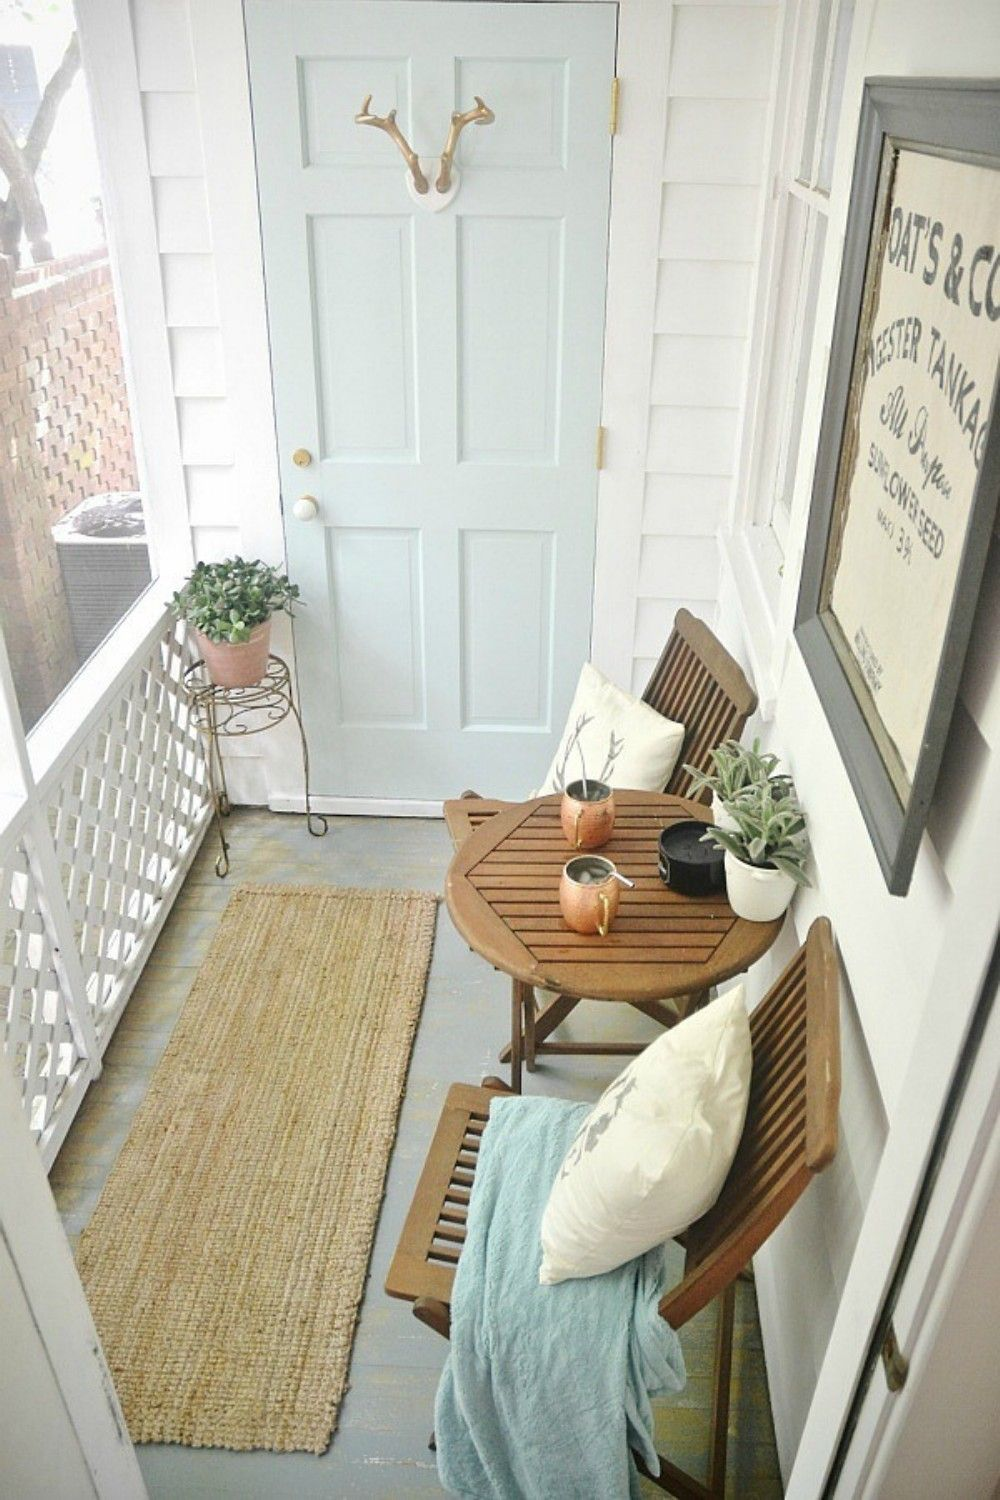 25 Awesome Small Front Porch Design Ideas | Small front porches ...